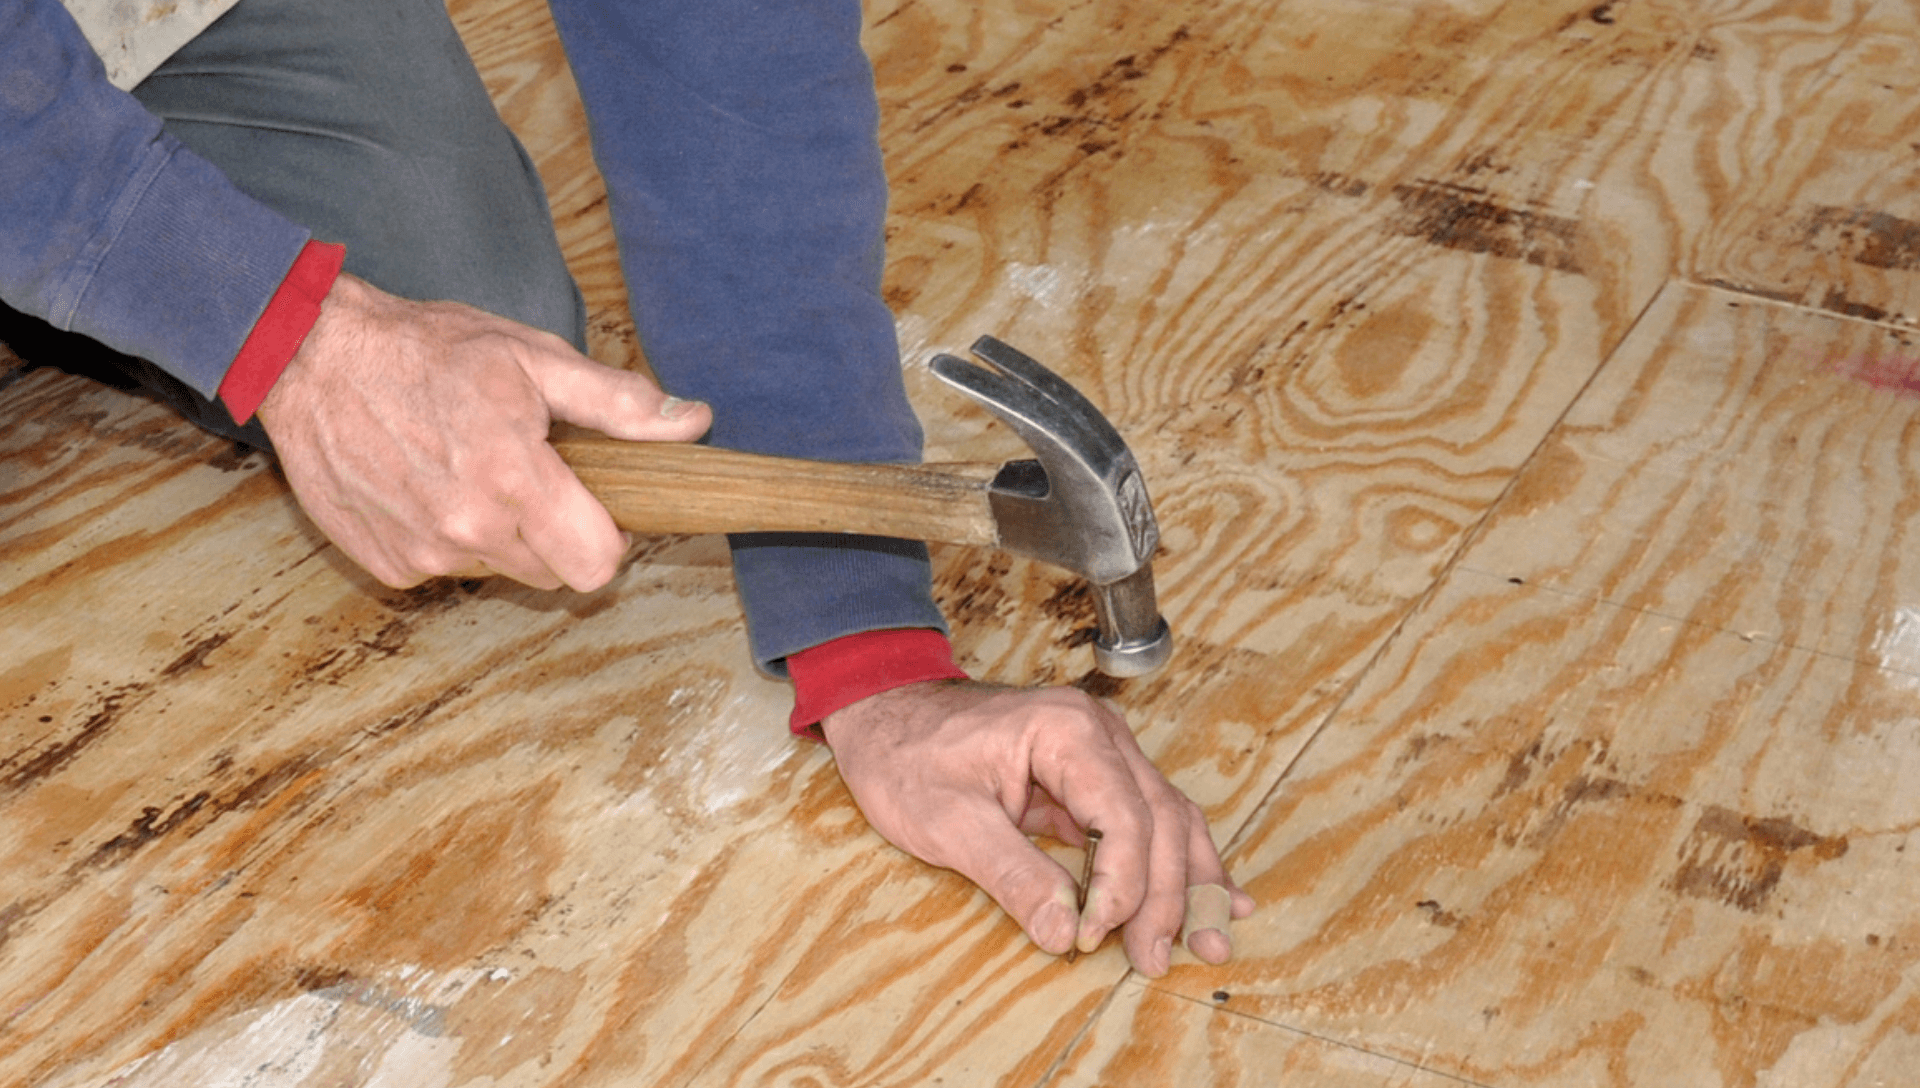 A man is using a hammer to nail in boards during an RV floor repair.